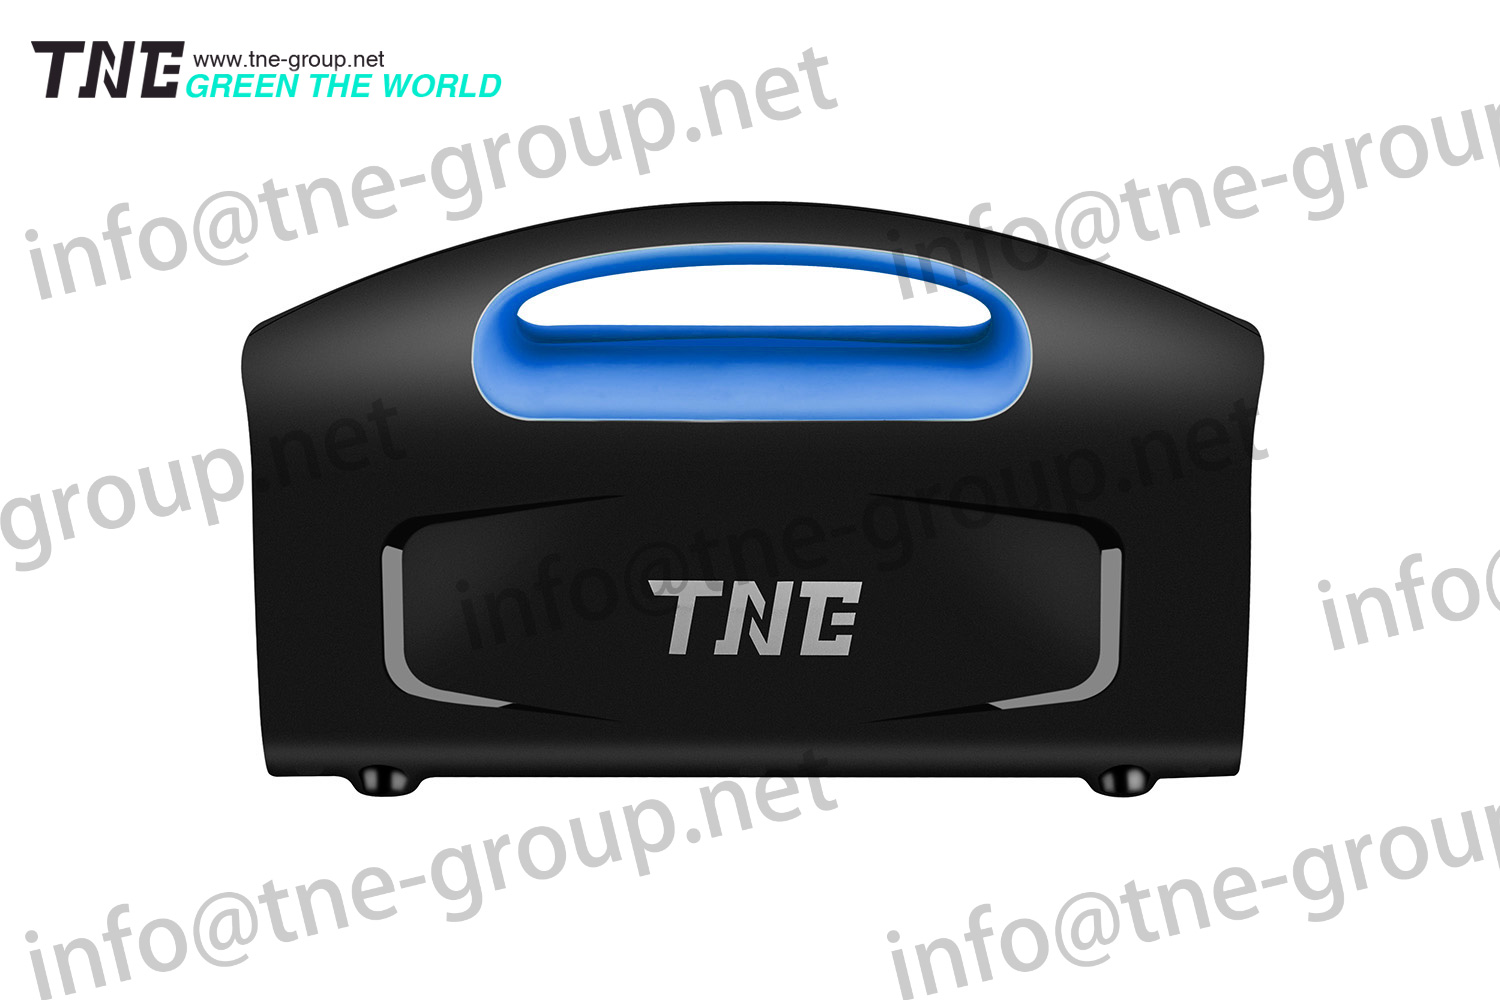 TNE High Quality 24v UPS storage battery for renewable energy system